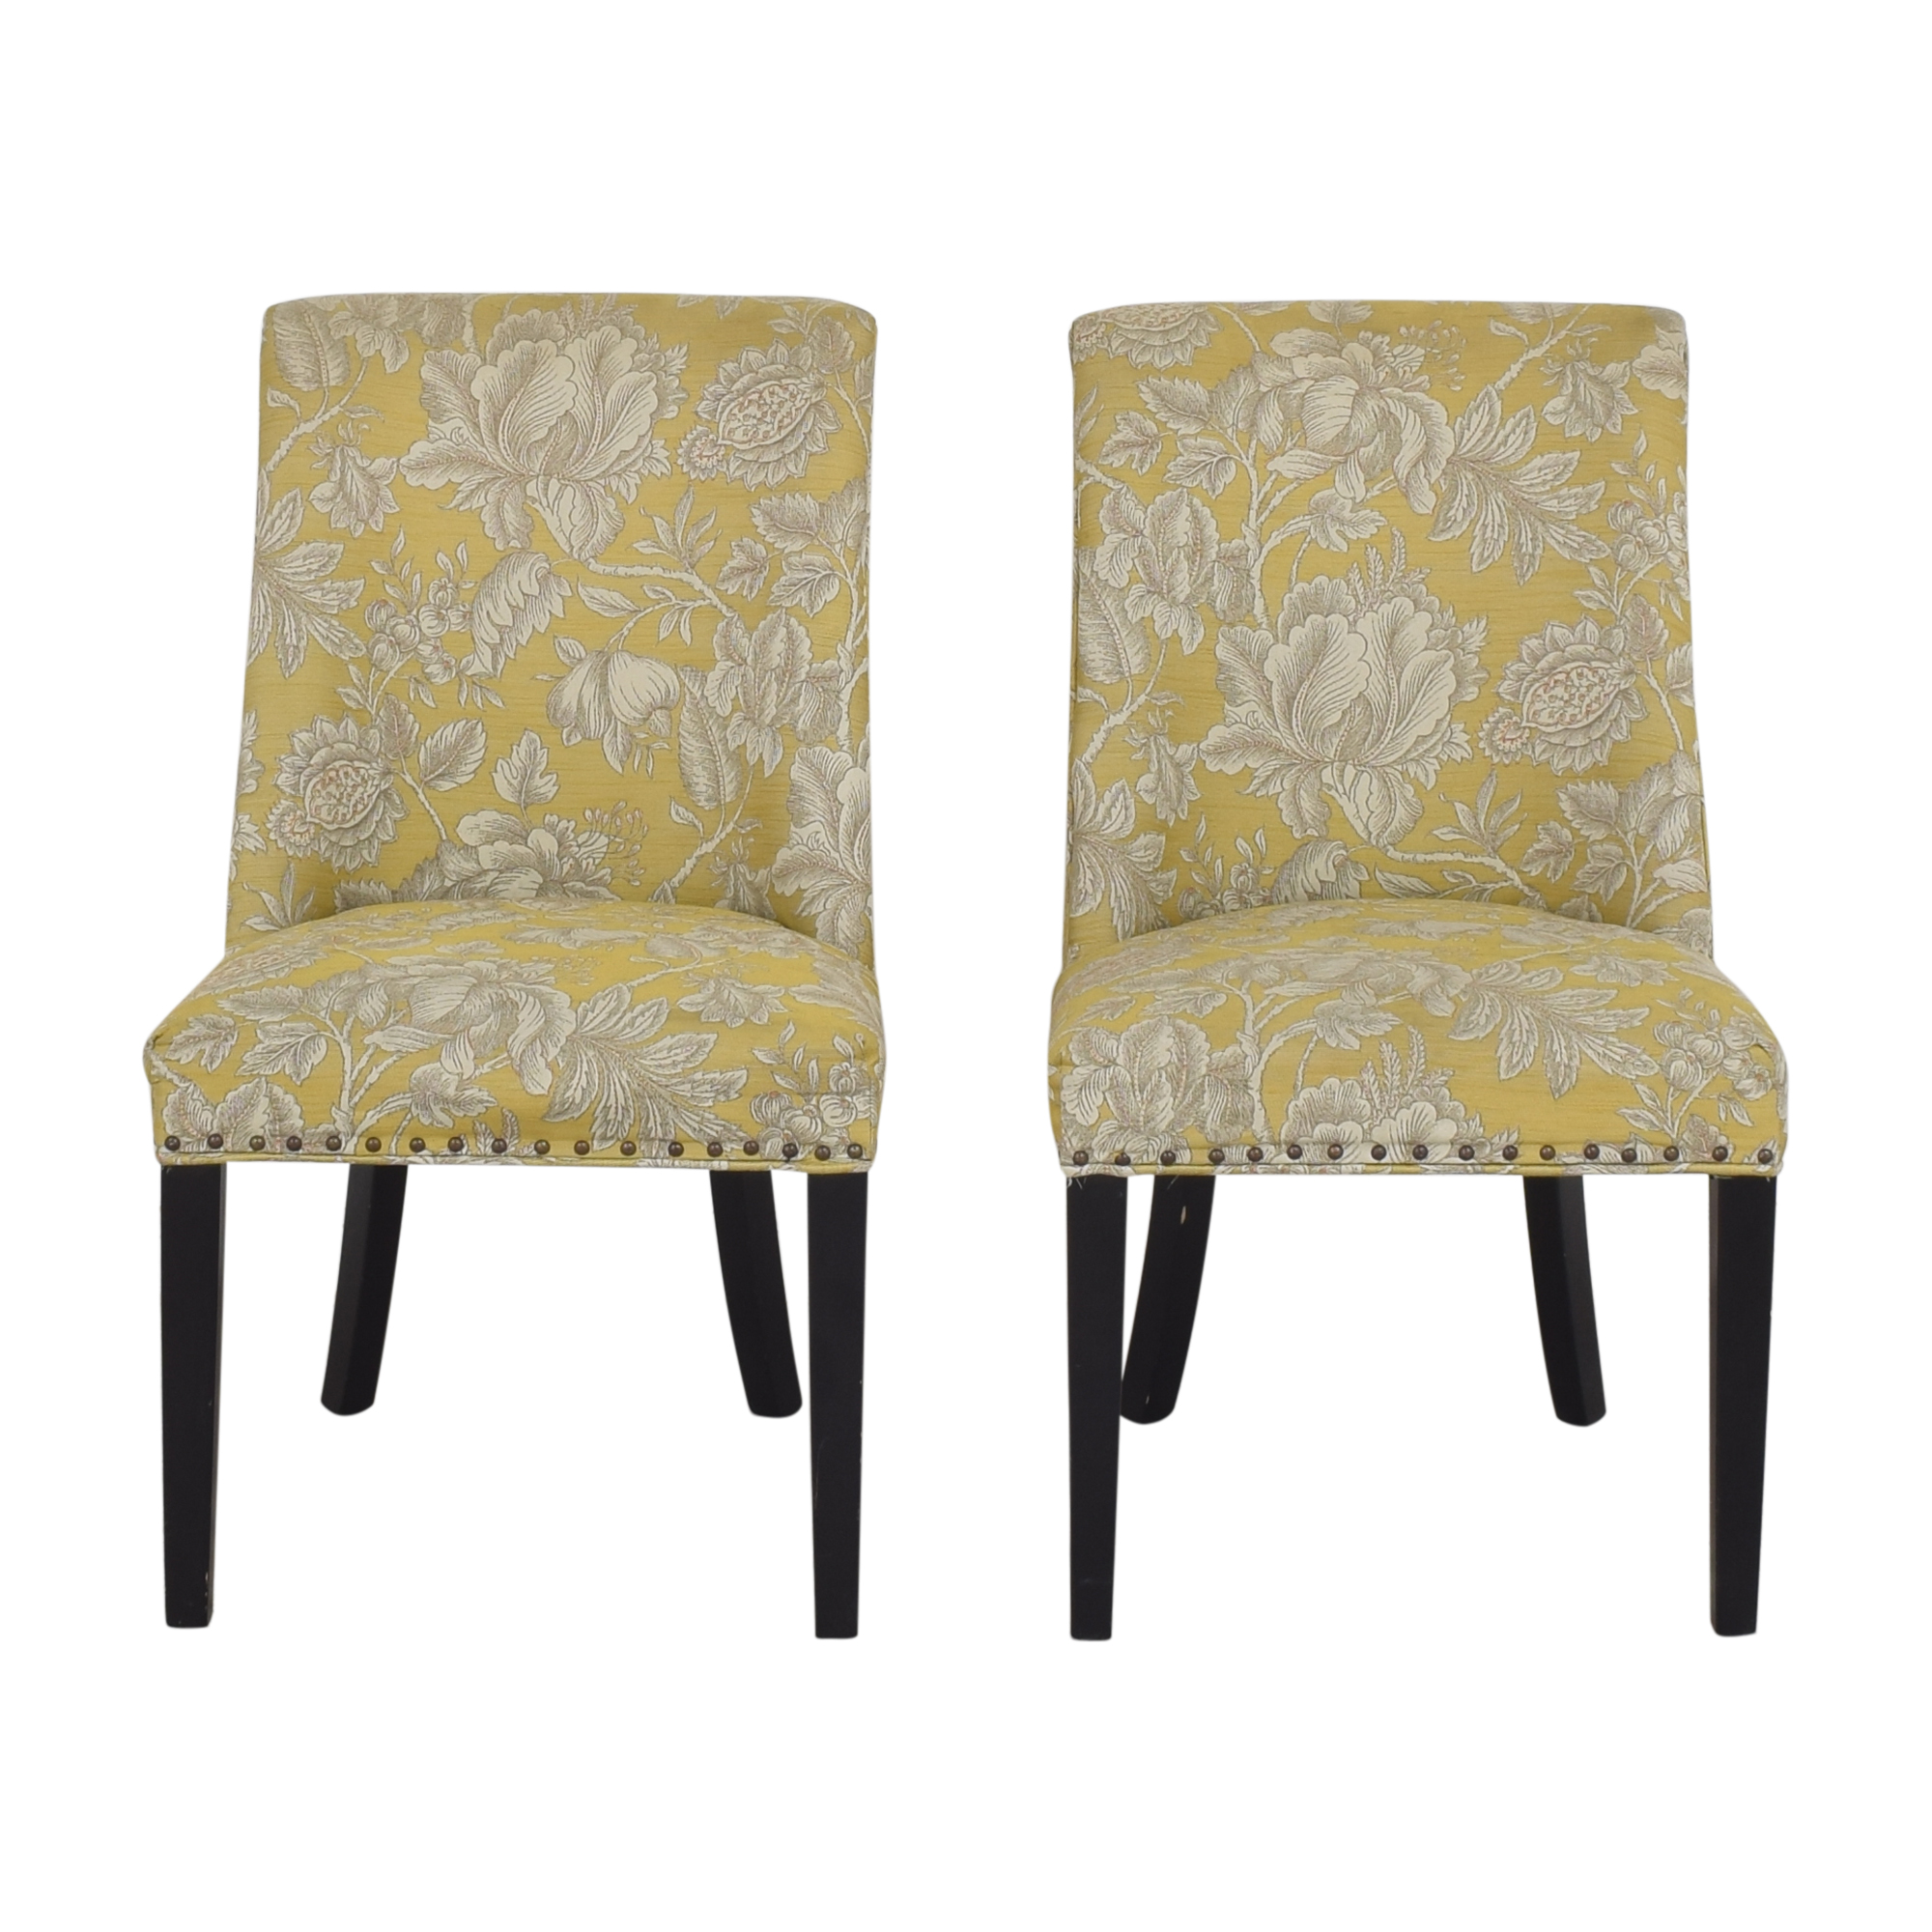 Pier 1 Pier 1 Corinne Floral Dining Chairs dimensions